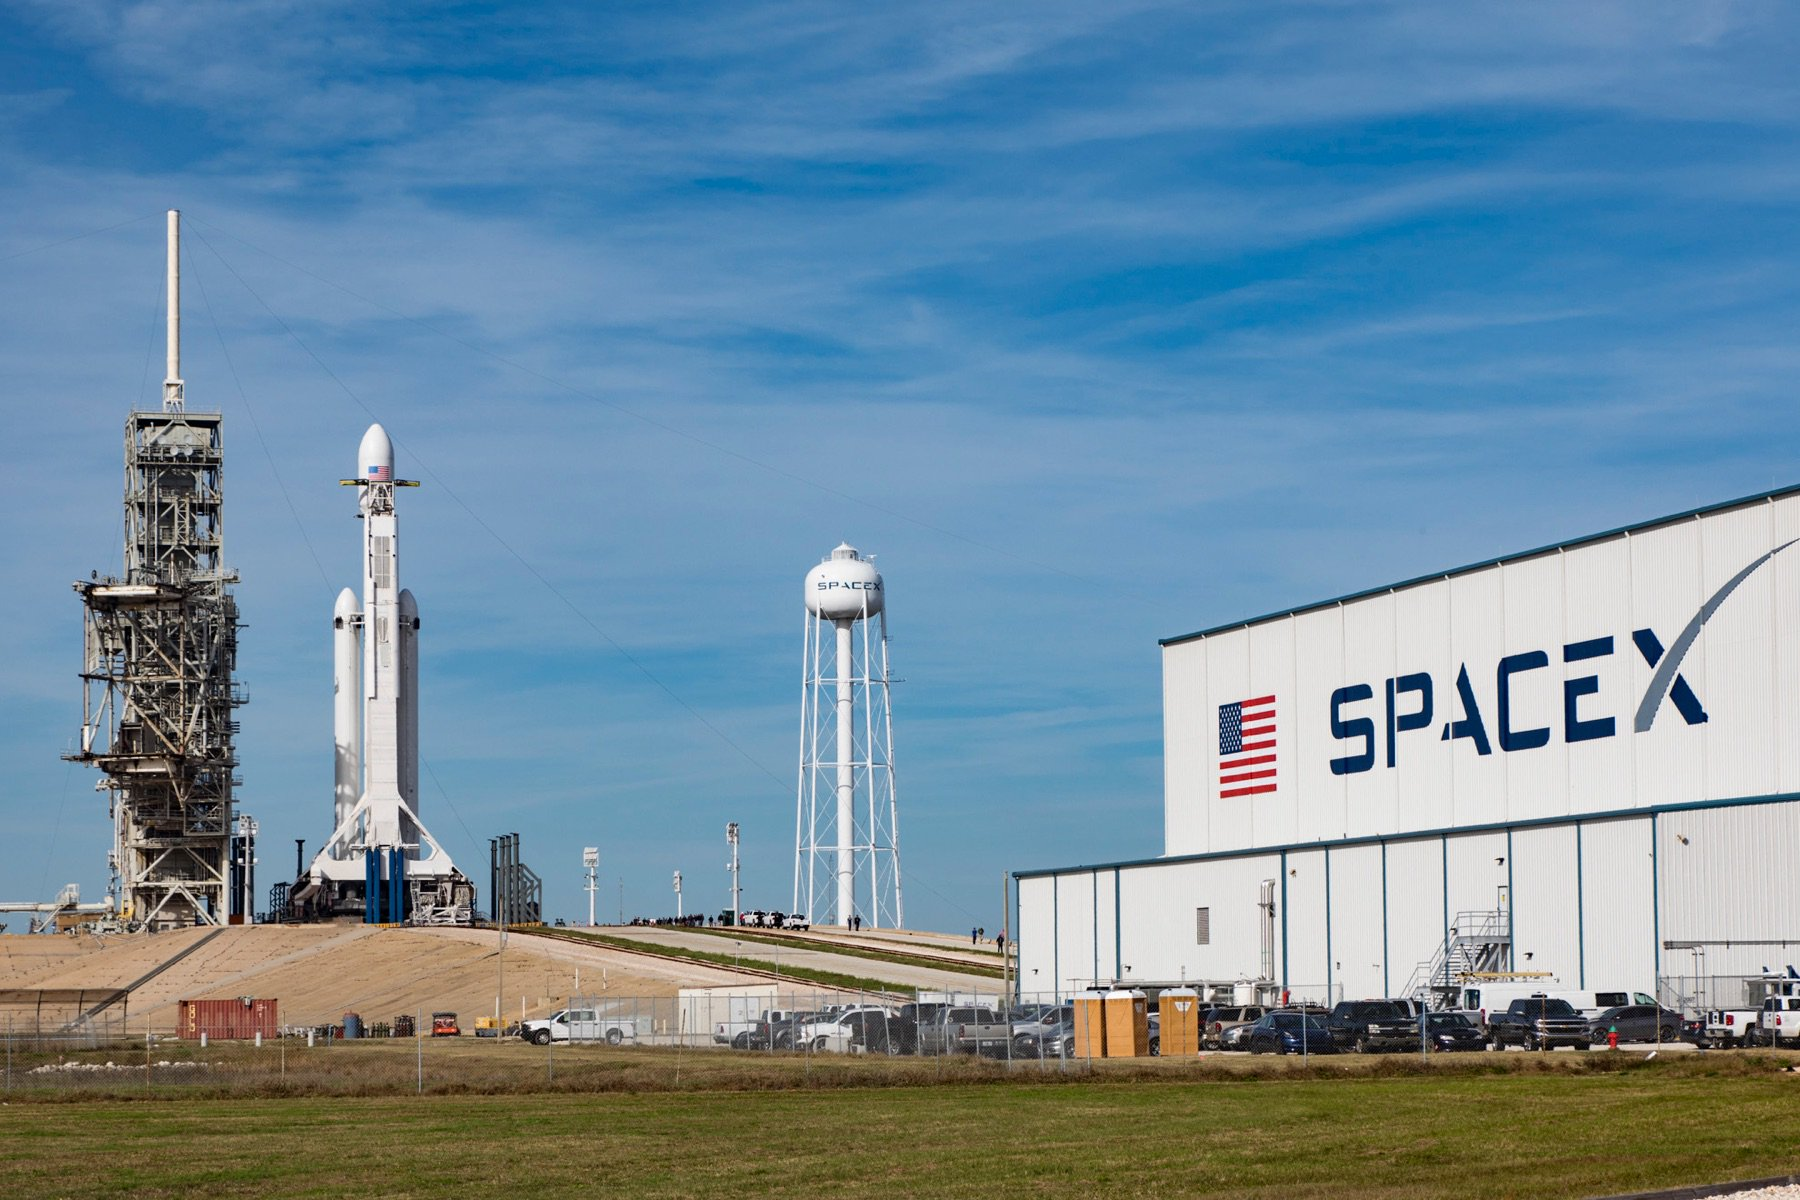 SpaceX and United Launch Alliance land $640 million in Air Force launches https://t.co/5KsEVbSCht by @etherington https://t.co/Cc56NOg271